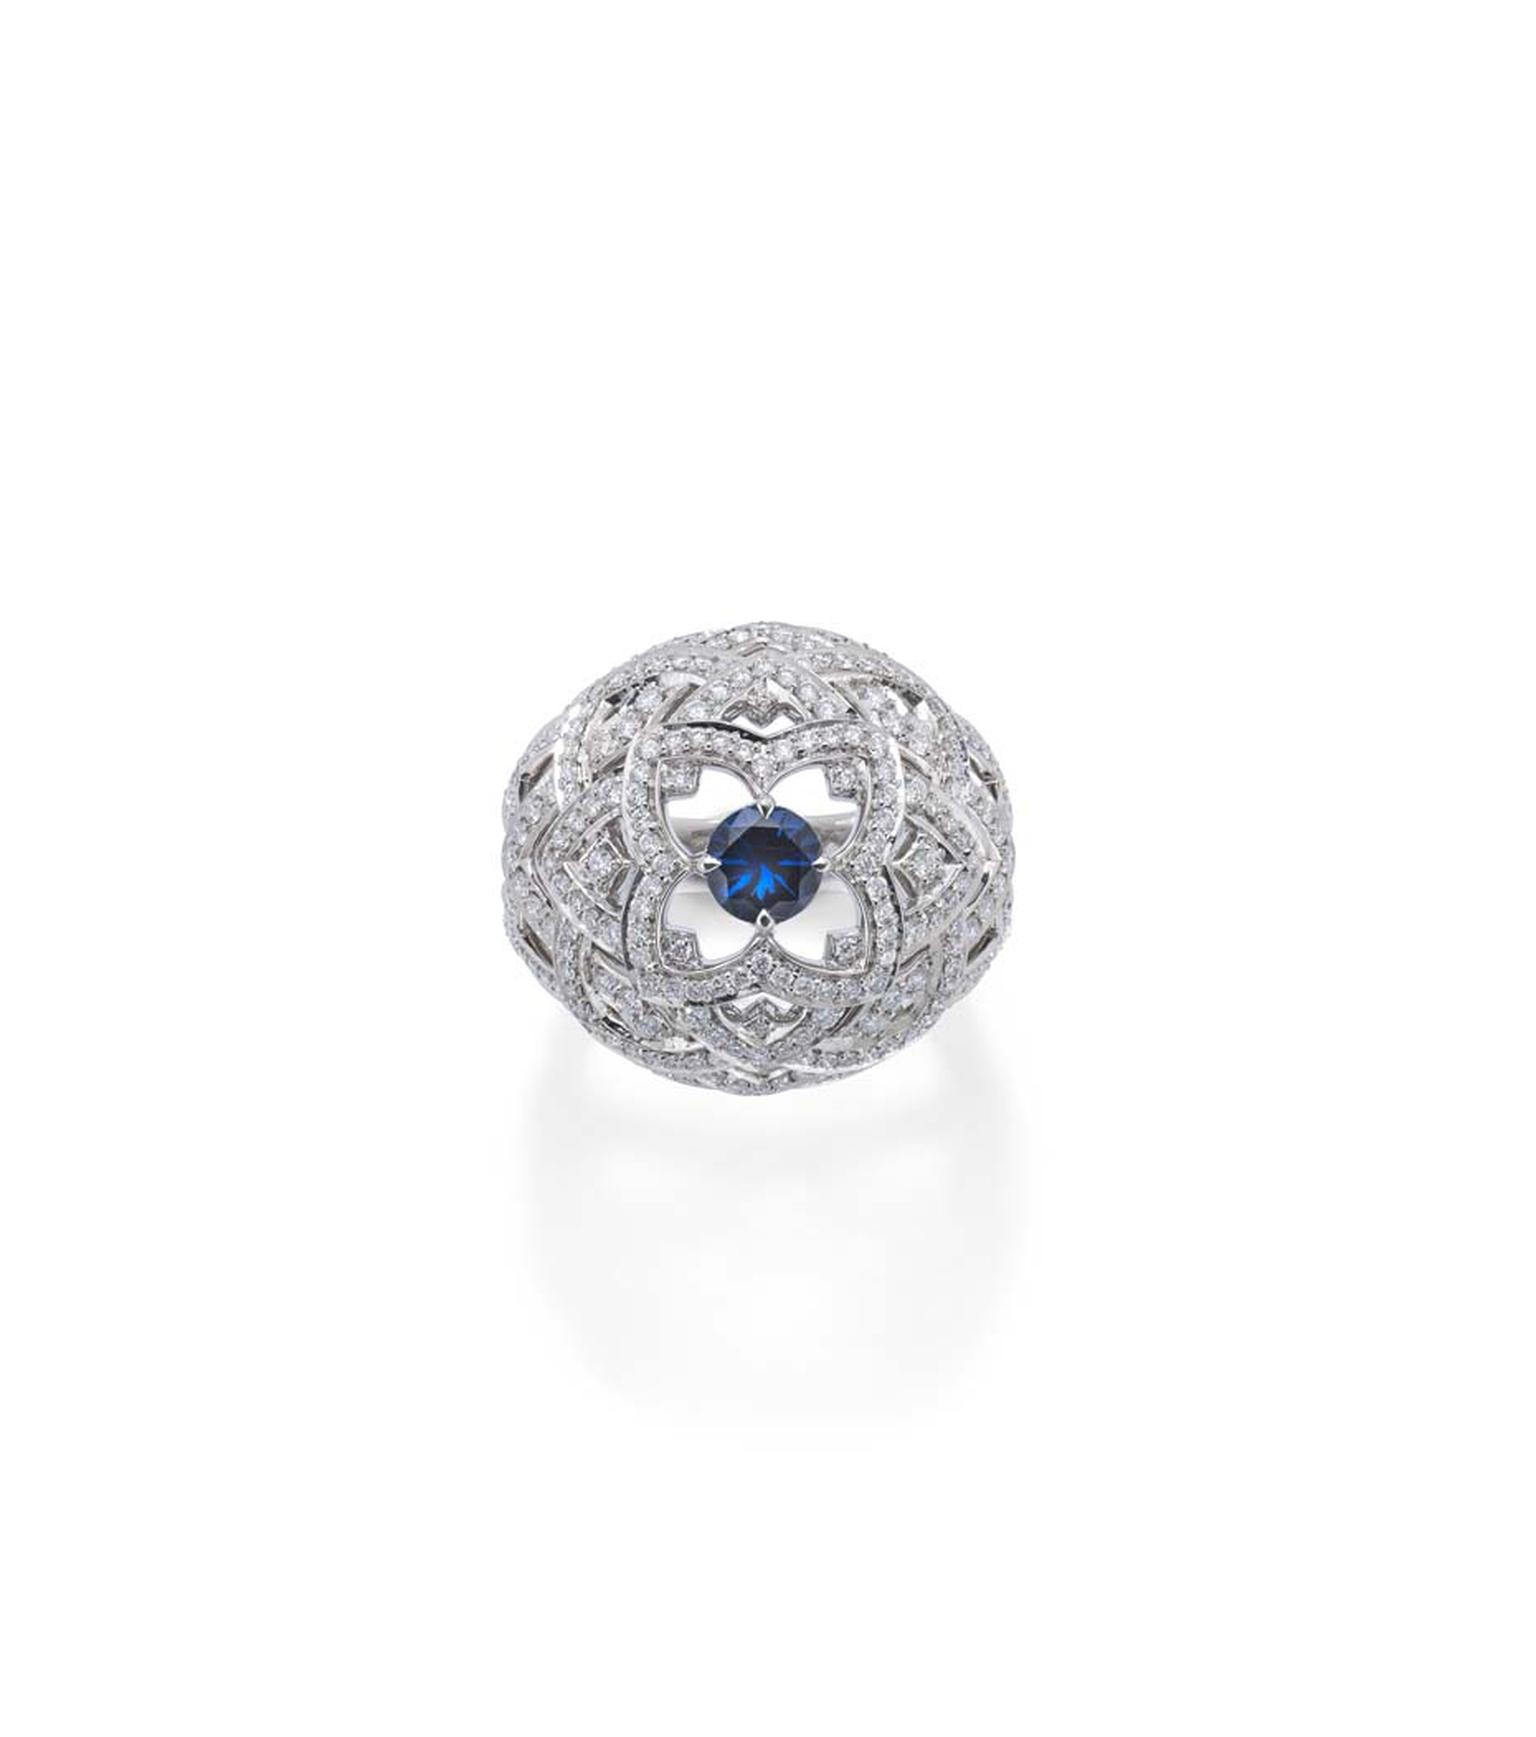 Mappin & Webb Floresco collection Bombe ring with 250 diamonds surrounding a centre sapphire.